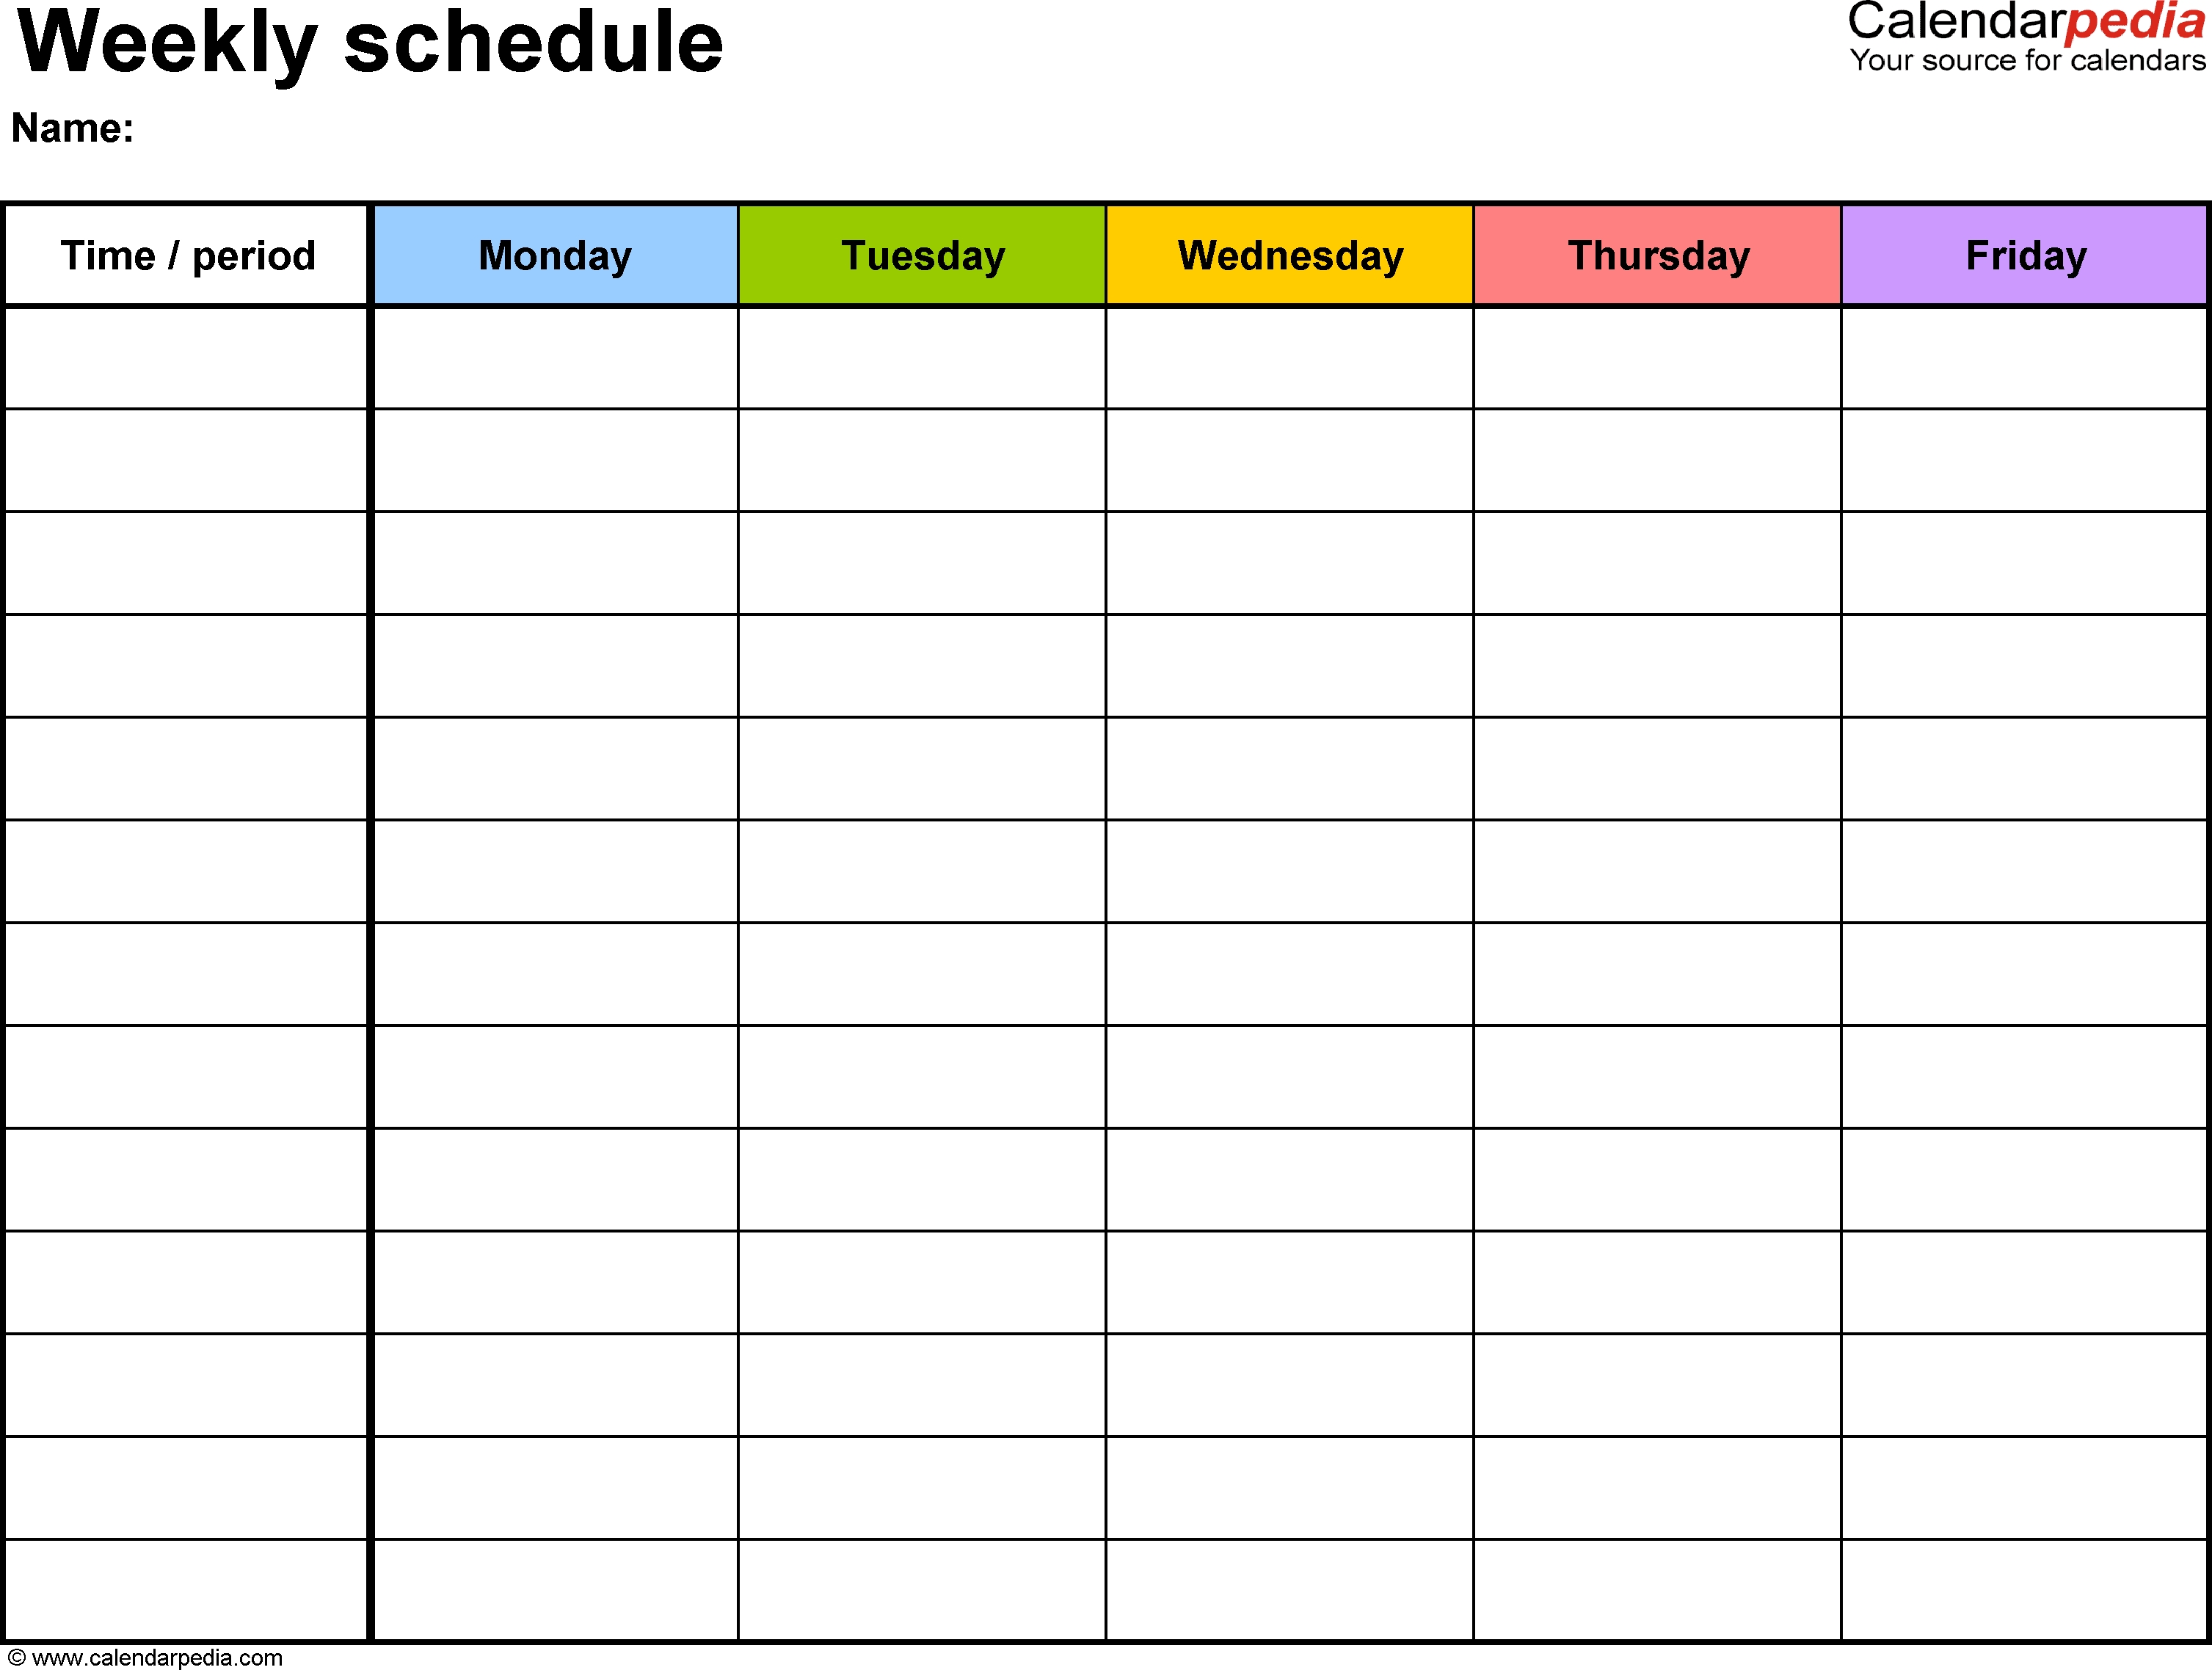 Free Weekly Schedule Templates For Word - 18 Templates regarding Monday Through Friday Calendar With Times